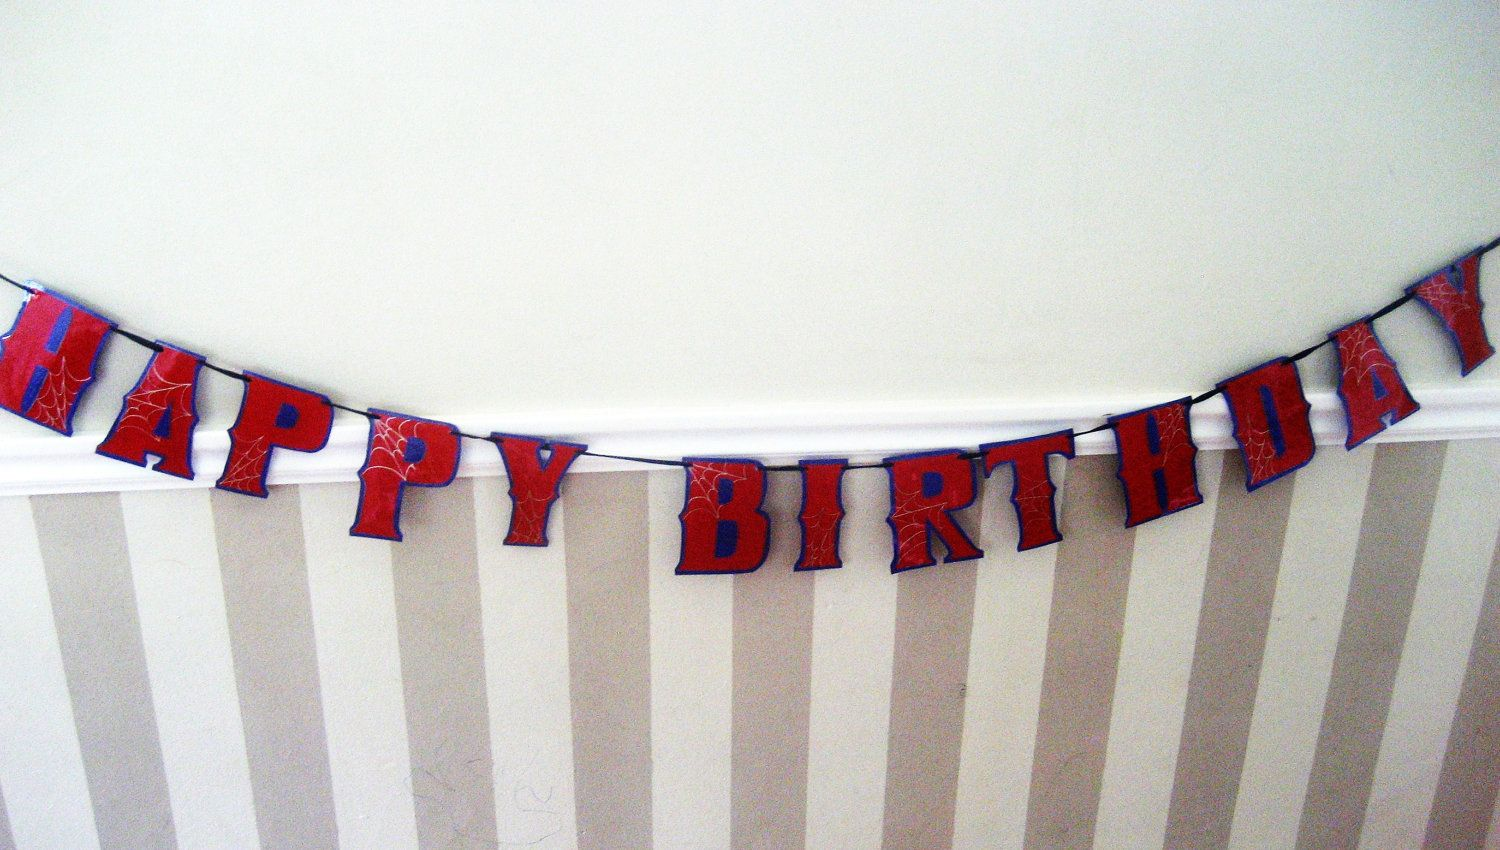 Spiderman HAPPY BiRTHDAY Banner Red on Blue with Silver by Devany. $15.00, via Etsy.